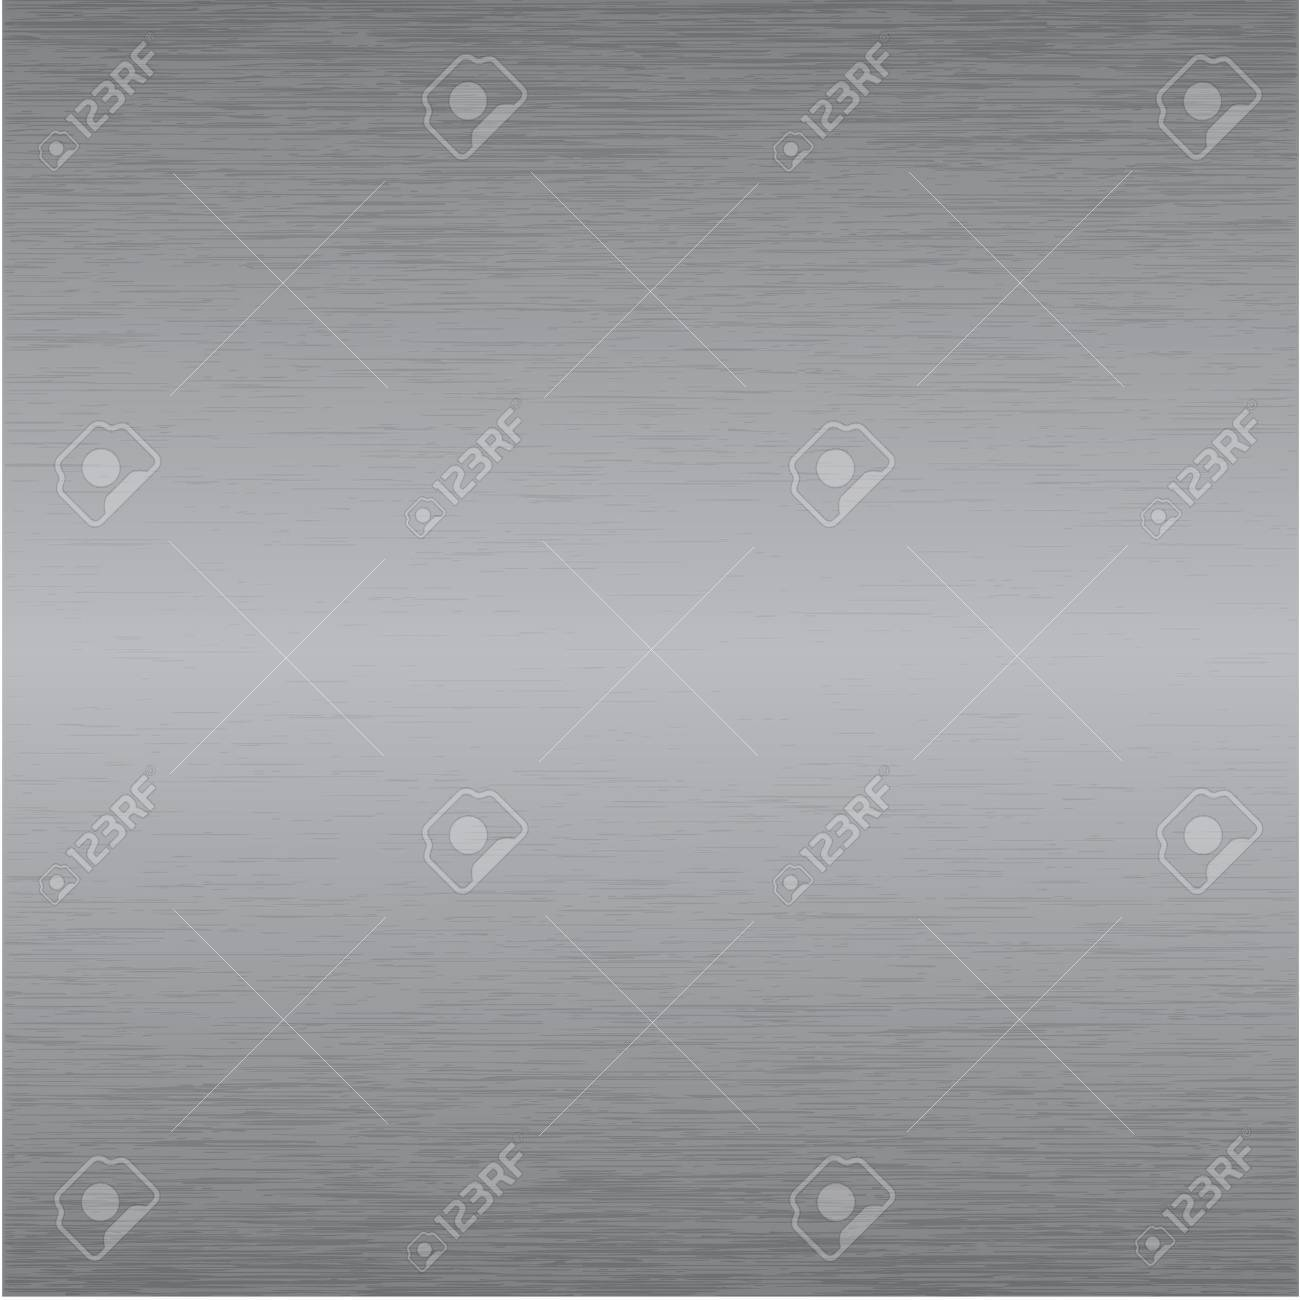 brushed metal plate texture Stock Vector - 6276721